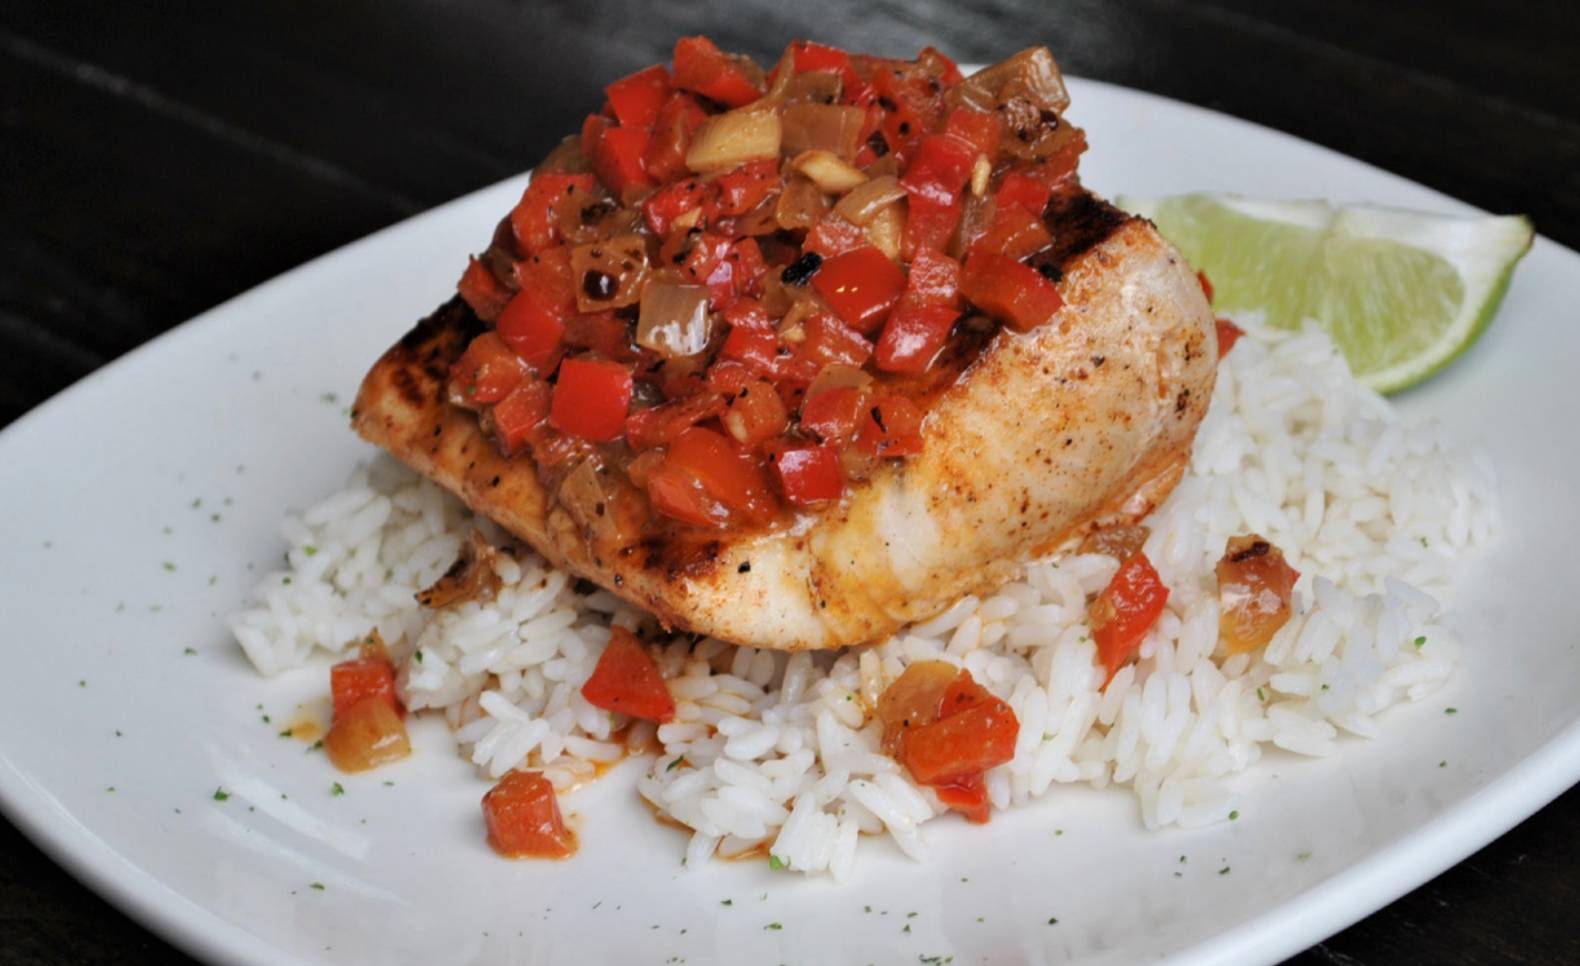 New Spring Menu Item - Cobia St. Charles!